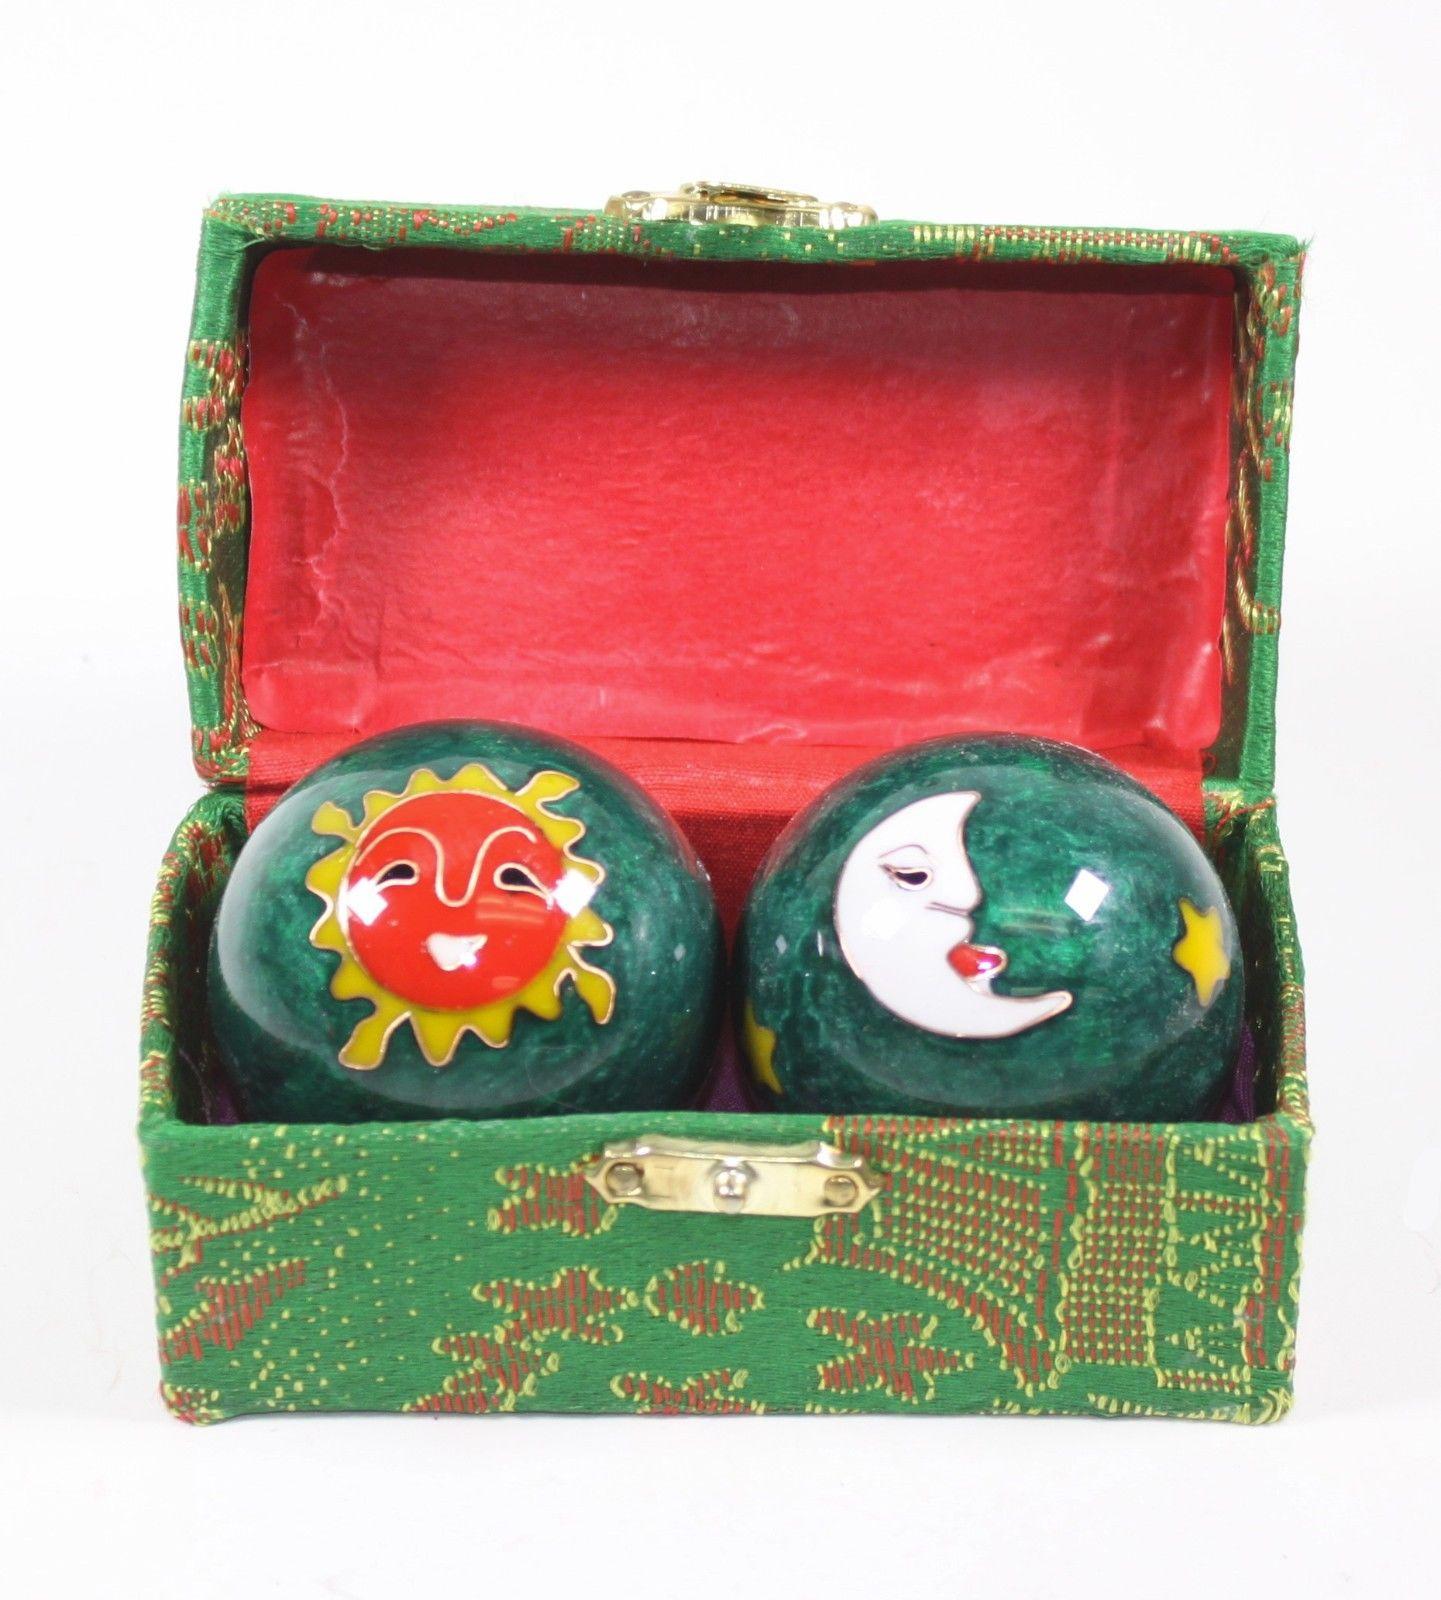 Green Sun & Moon Cloisonne Iron Balls Hand Stress Relief Set EXERCISE Finger Health Therapy US Seller